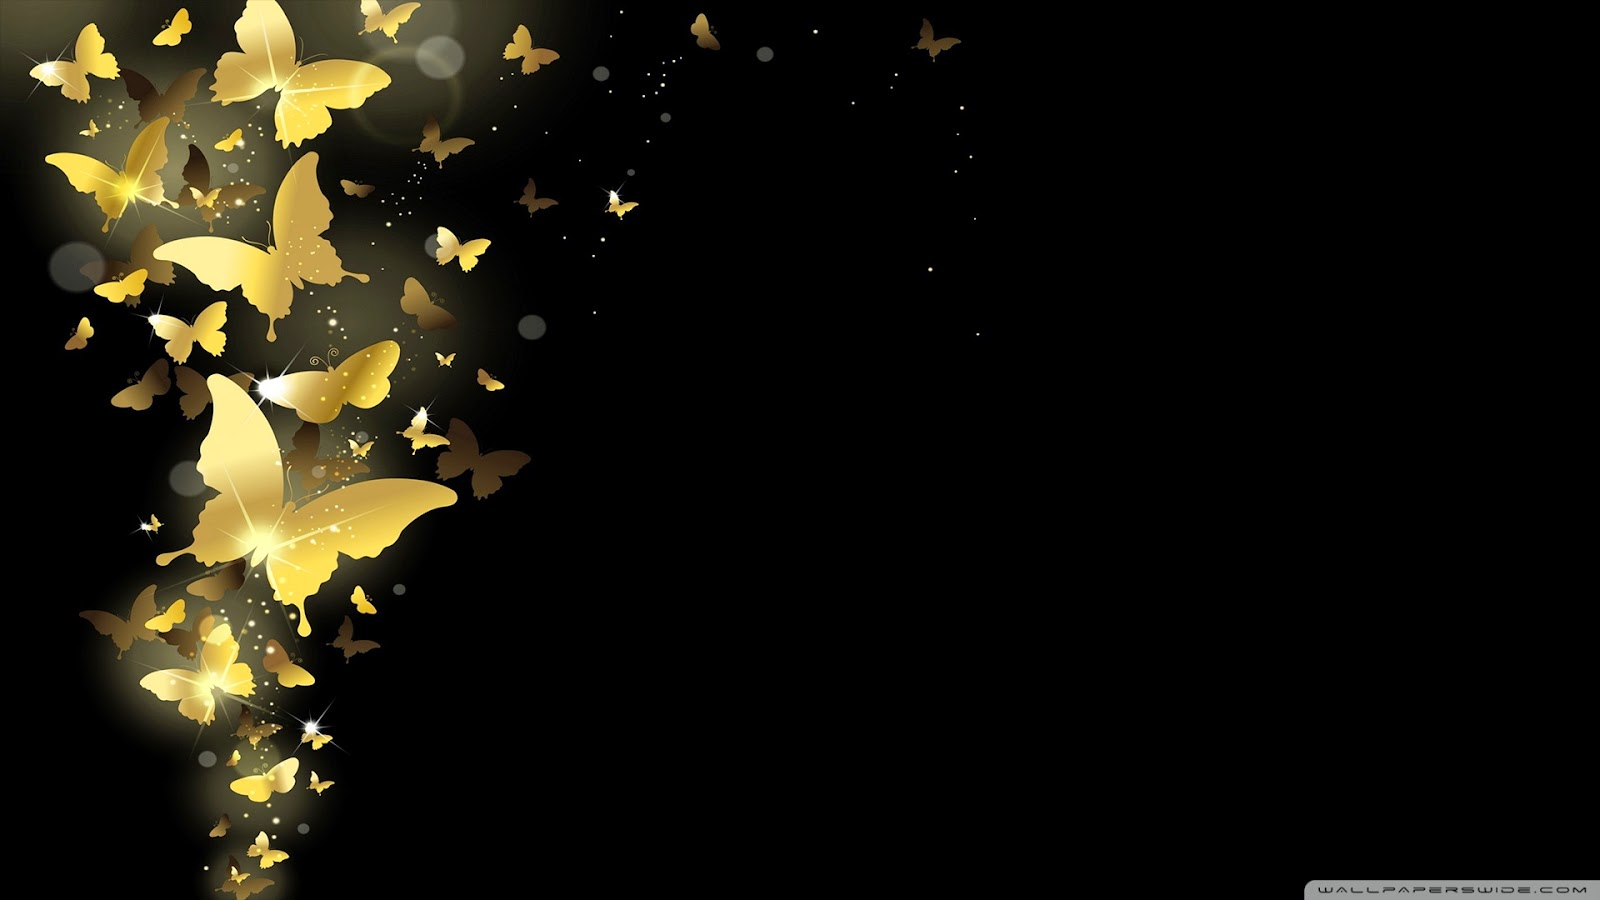 golden_butterflies-wallpaper-1920x1080